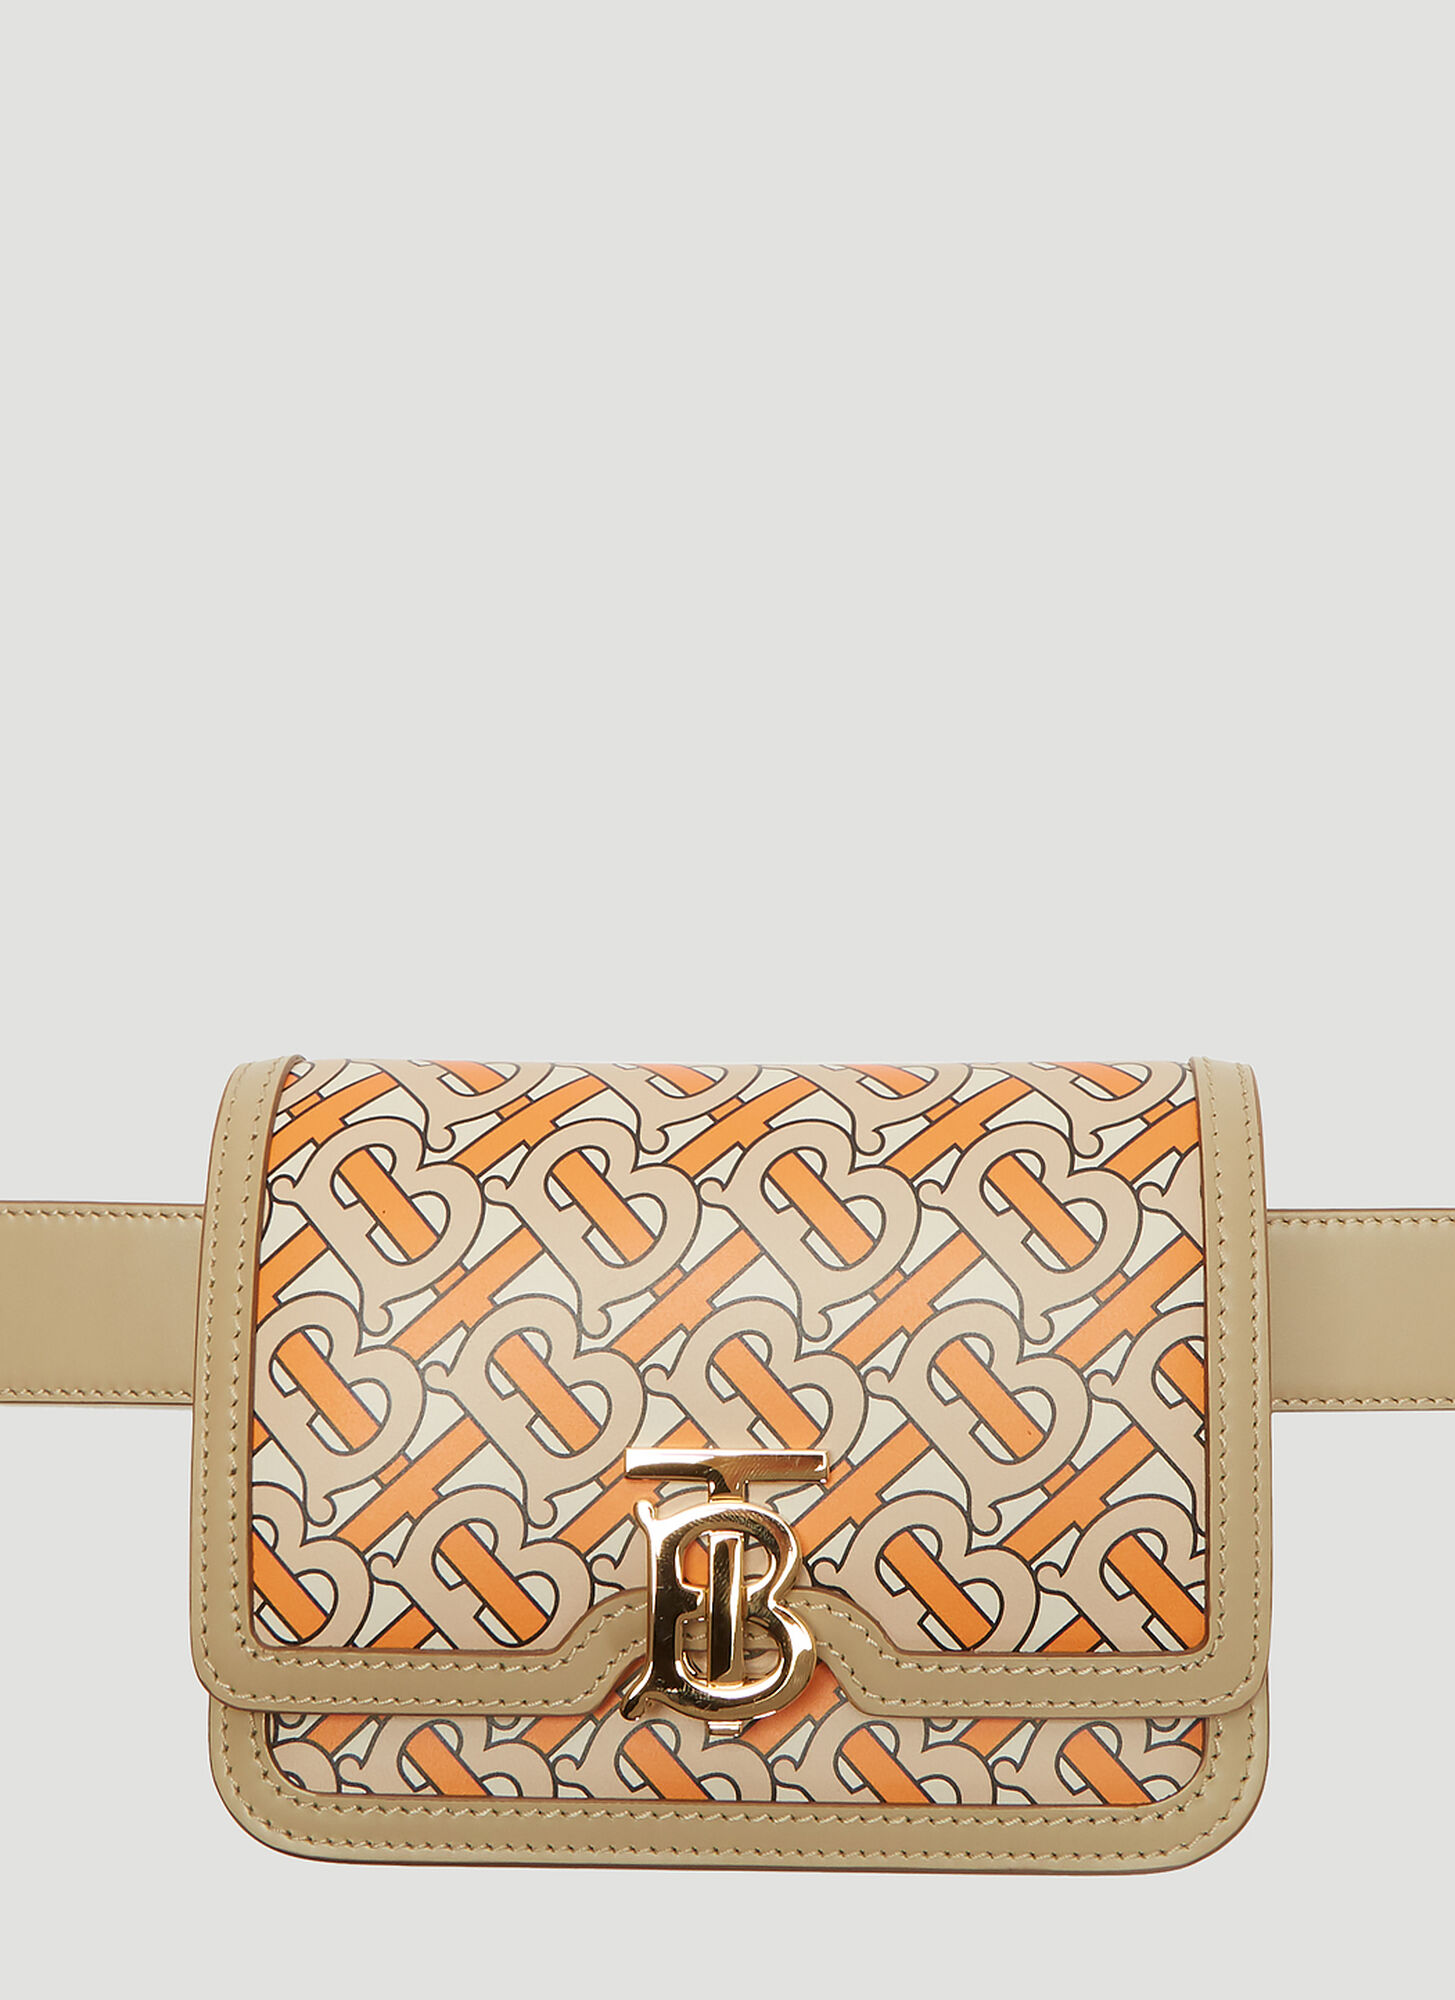 Burberry TB Monogram Print Belt Bag in Orange